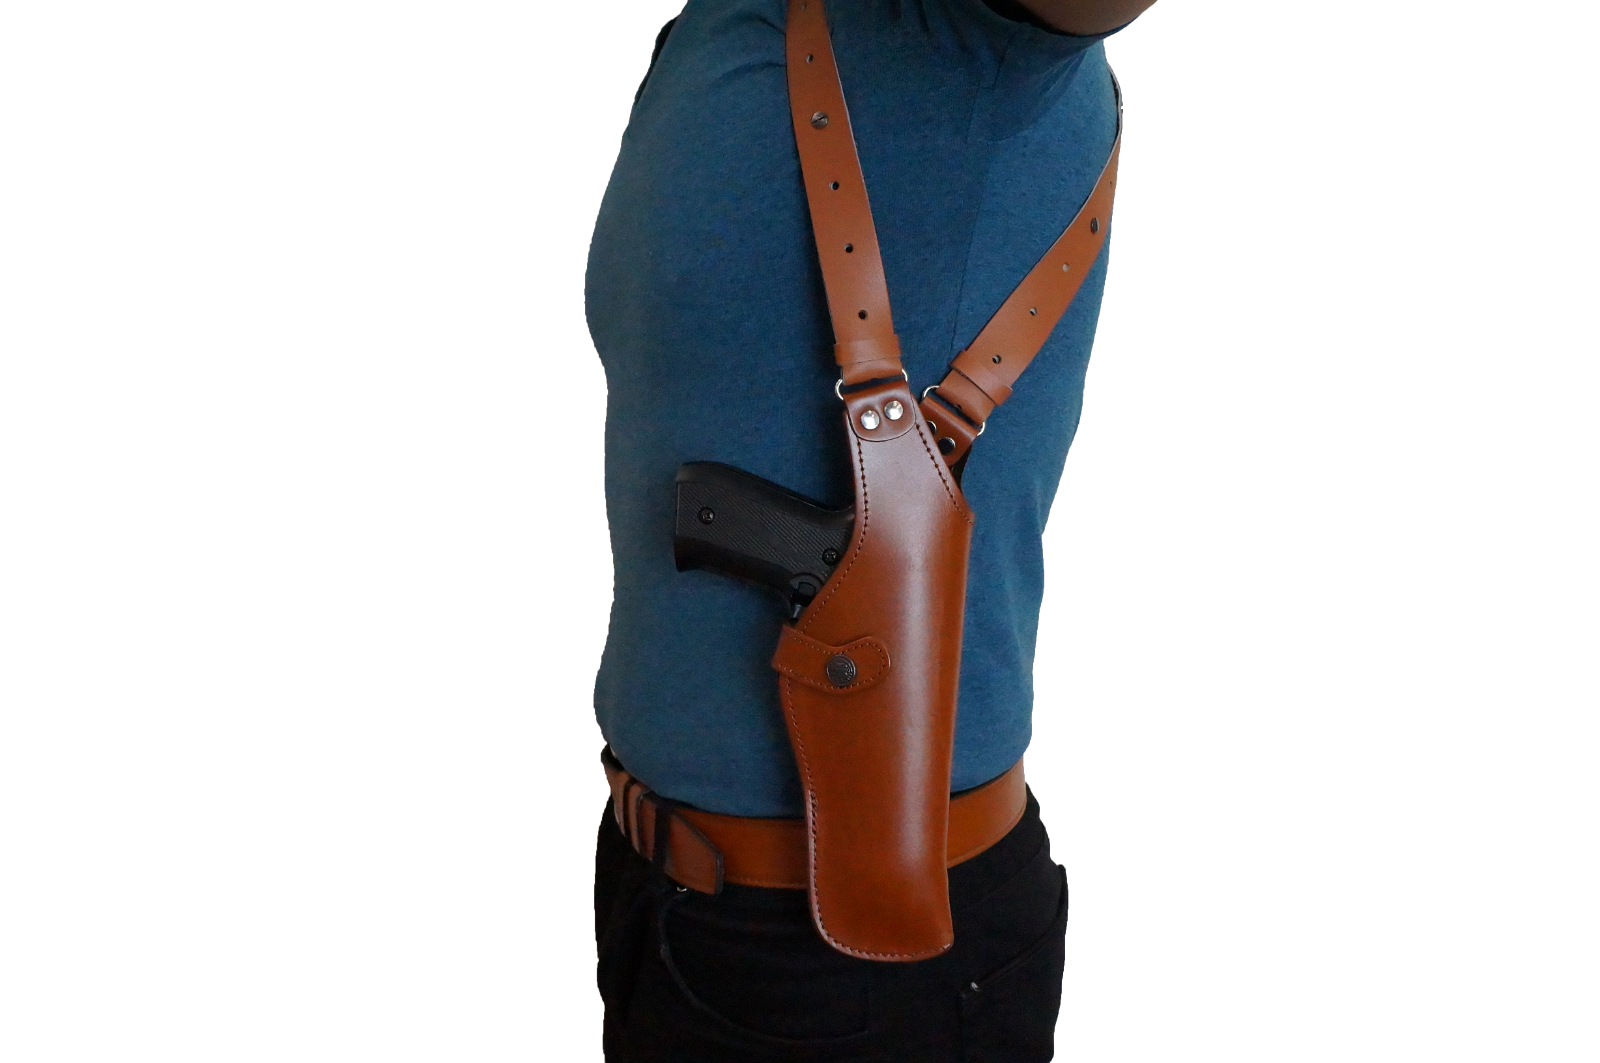 L452-SP Vertical Shoulder Holster with Suede Lining Fits CZ 75 SP-01 LEFT HANDED